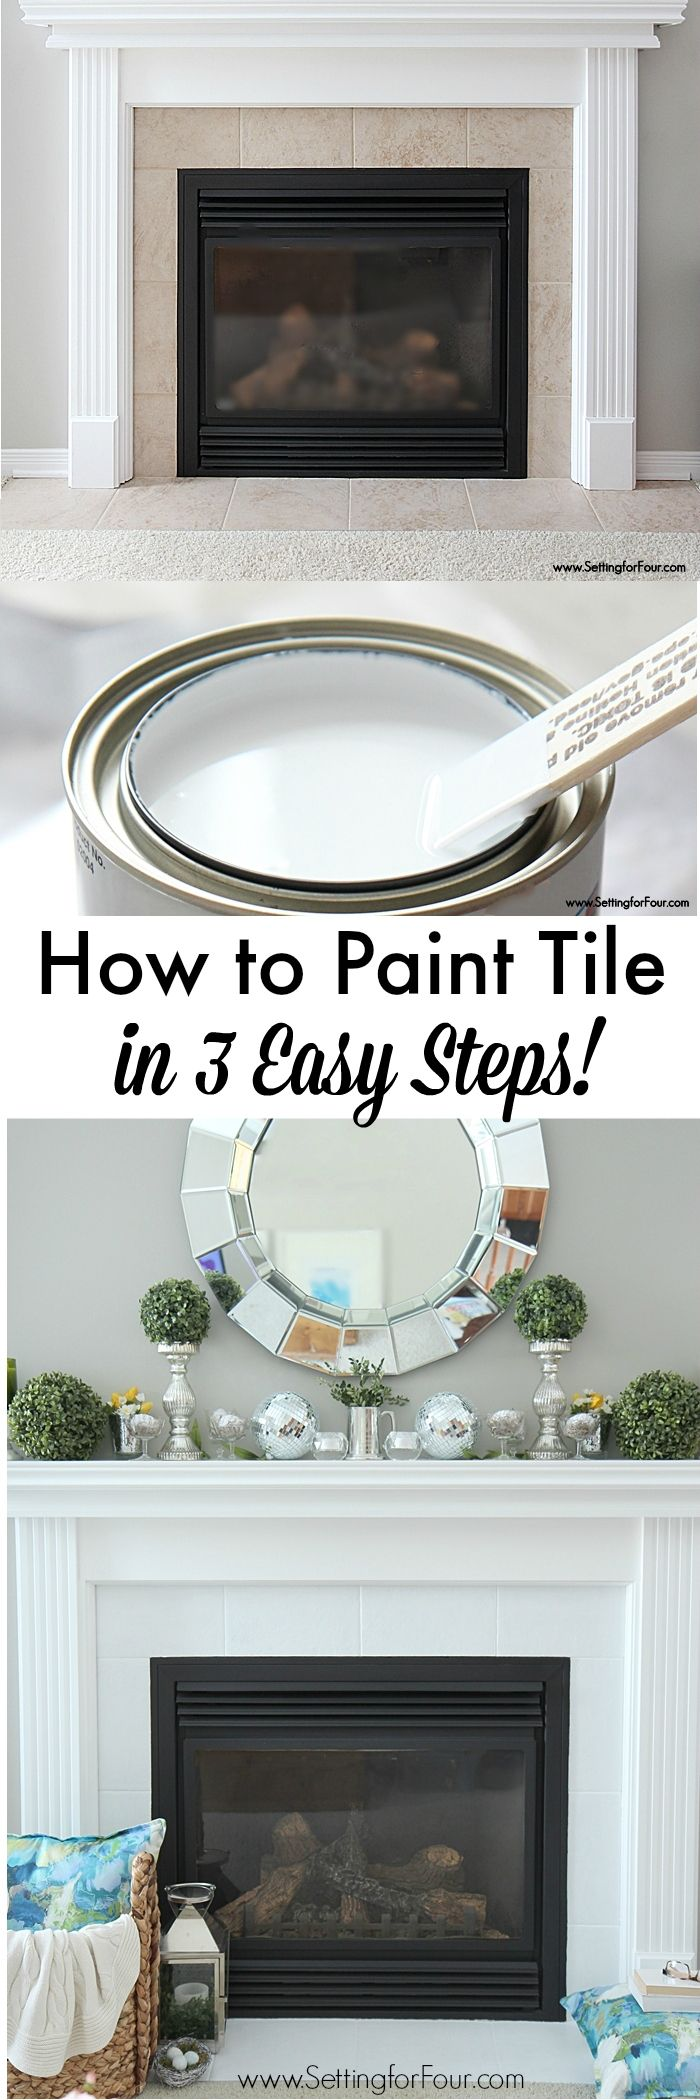 How to Paint Tile in 3 Easy Steps! NO SANDING REQUIRED! Before and After DIY Painted Fireplace Makeover. www.settingforfour.com